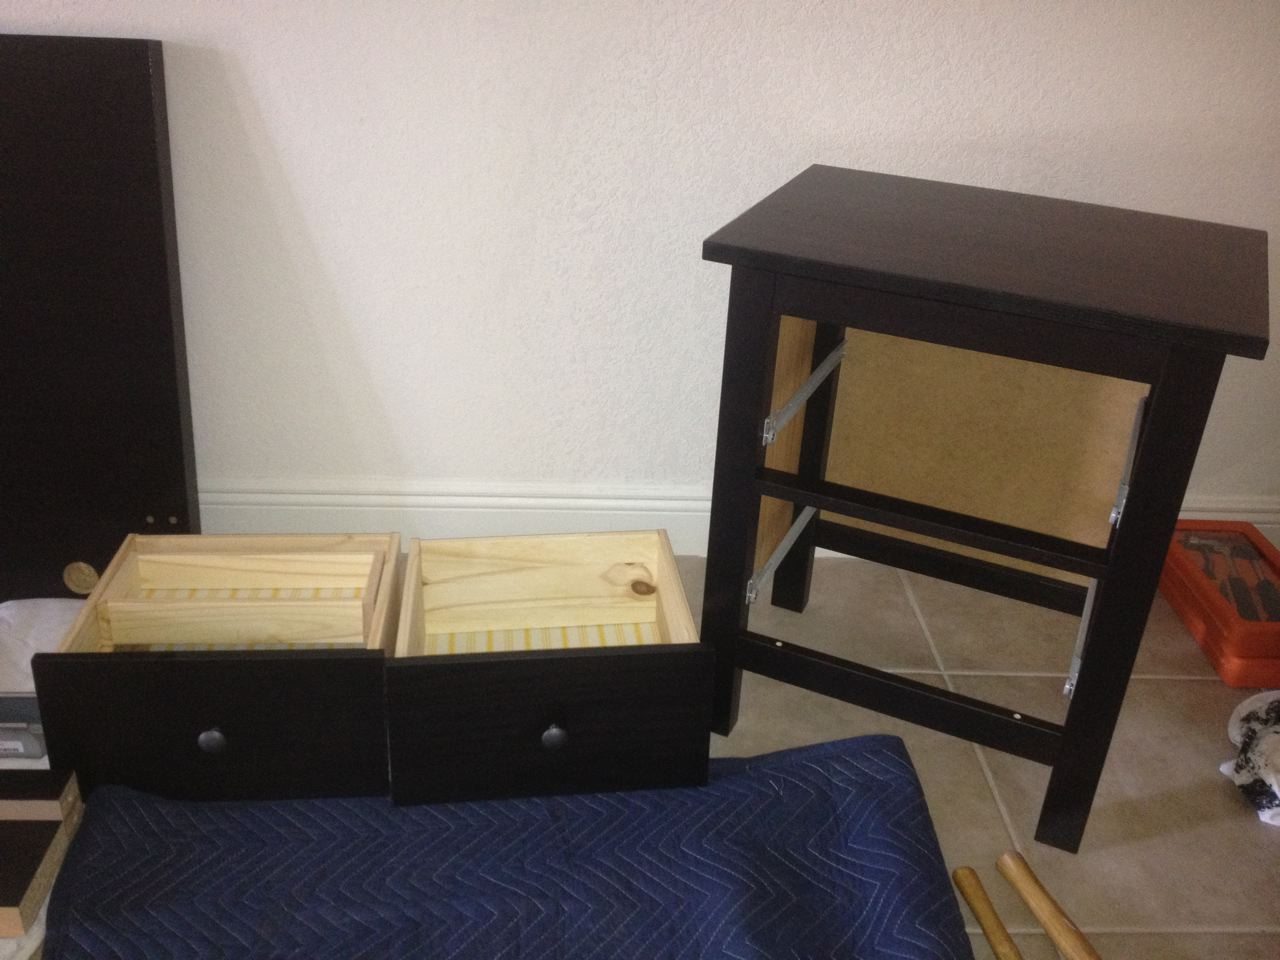 Ikea Hemnes 2 Drawer Nightstand Assembly Carter Assembly